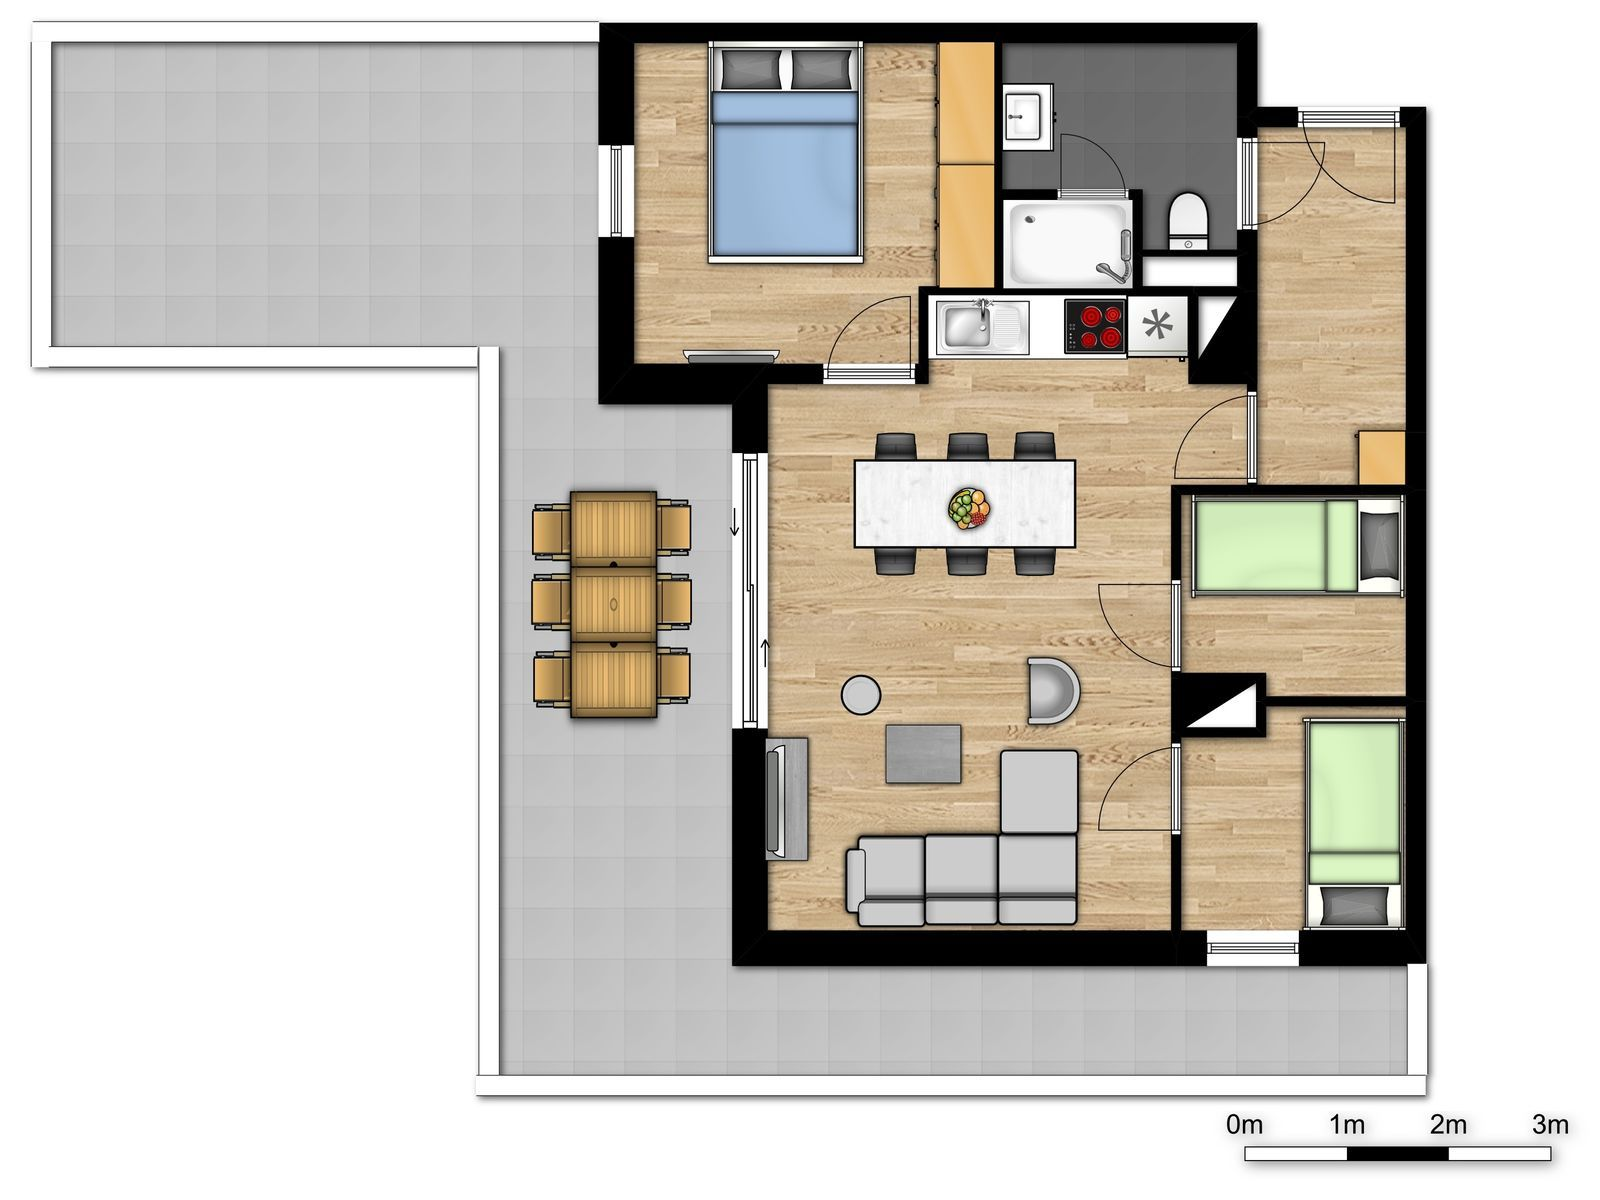 New family penthouse for 6 people with 2 bunk beds